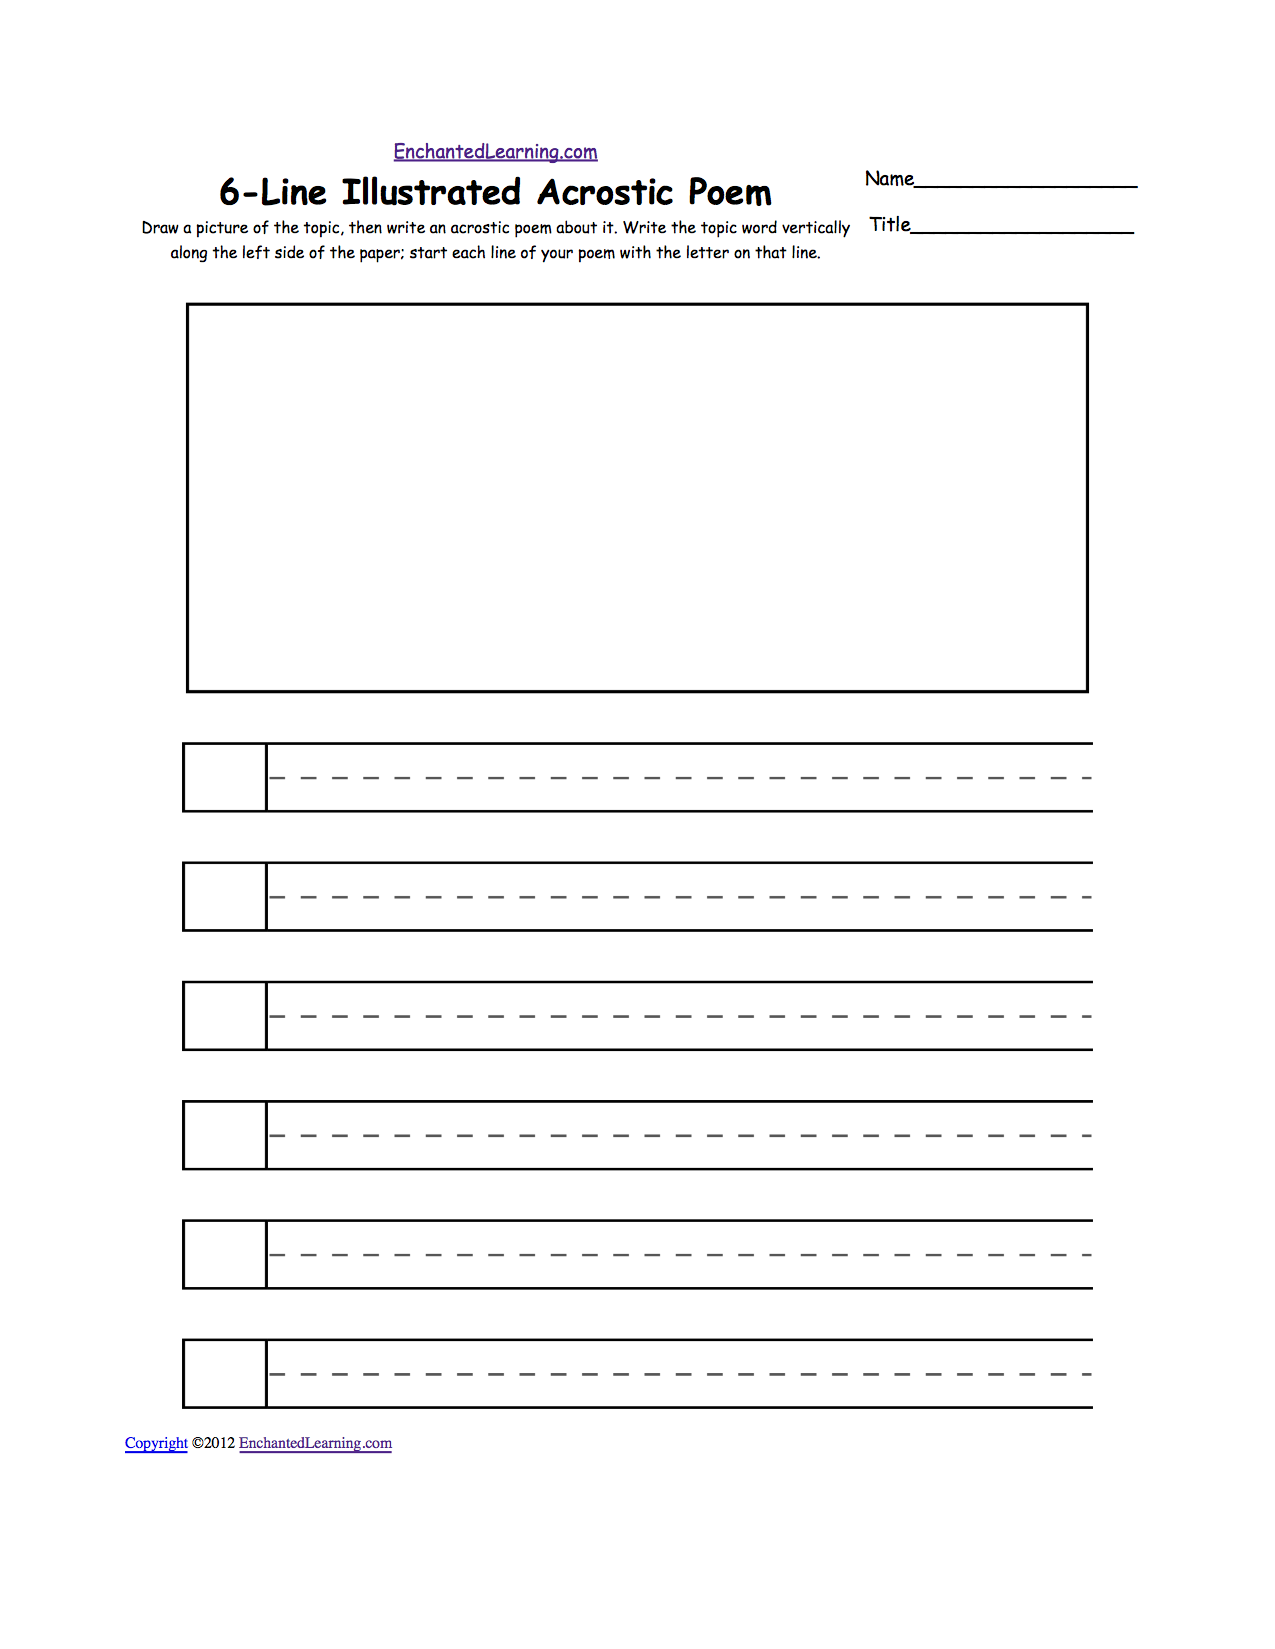 Worksheets I Am Poem Worksheet blank illustrated acrostic poem worksheets handwriting lines worksheet printout enchantedlearning com